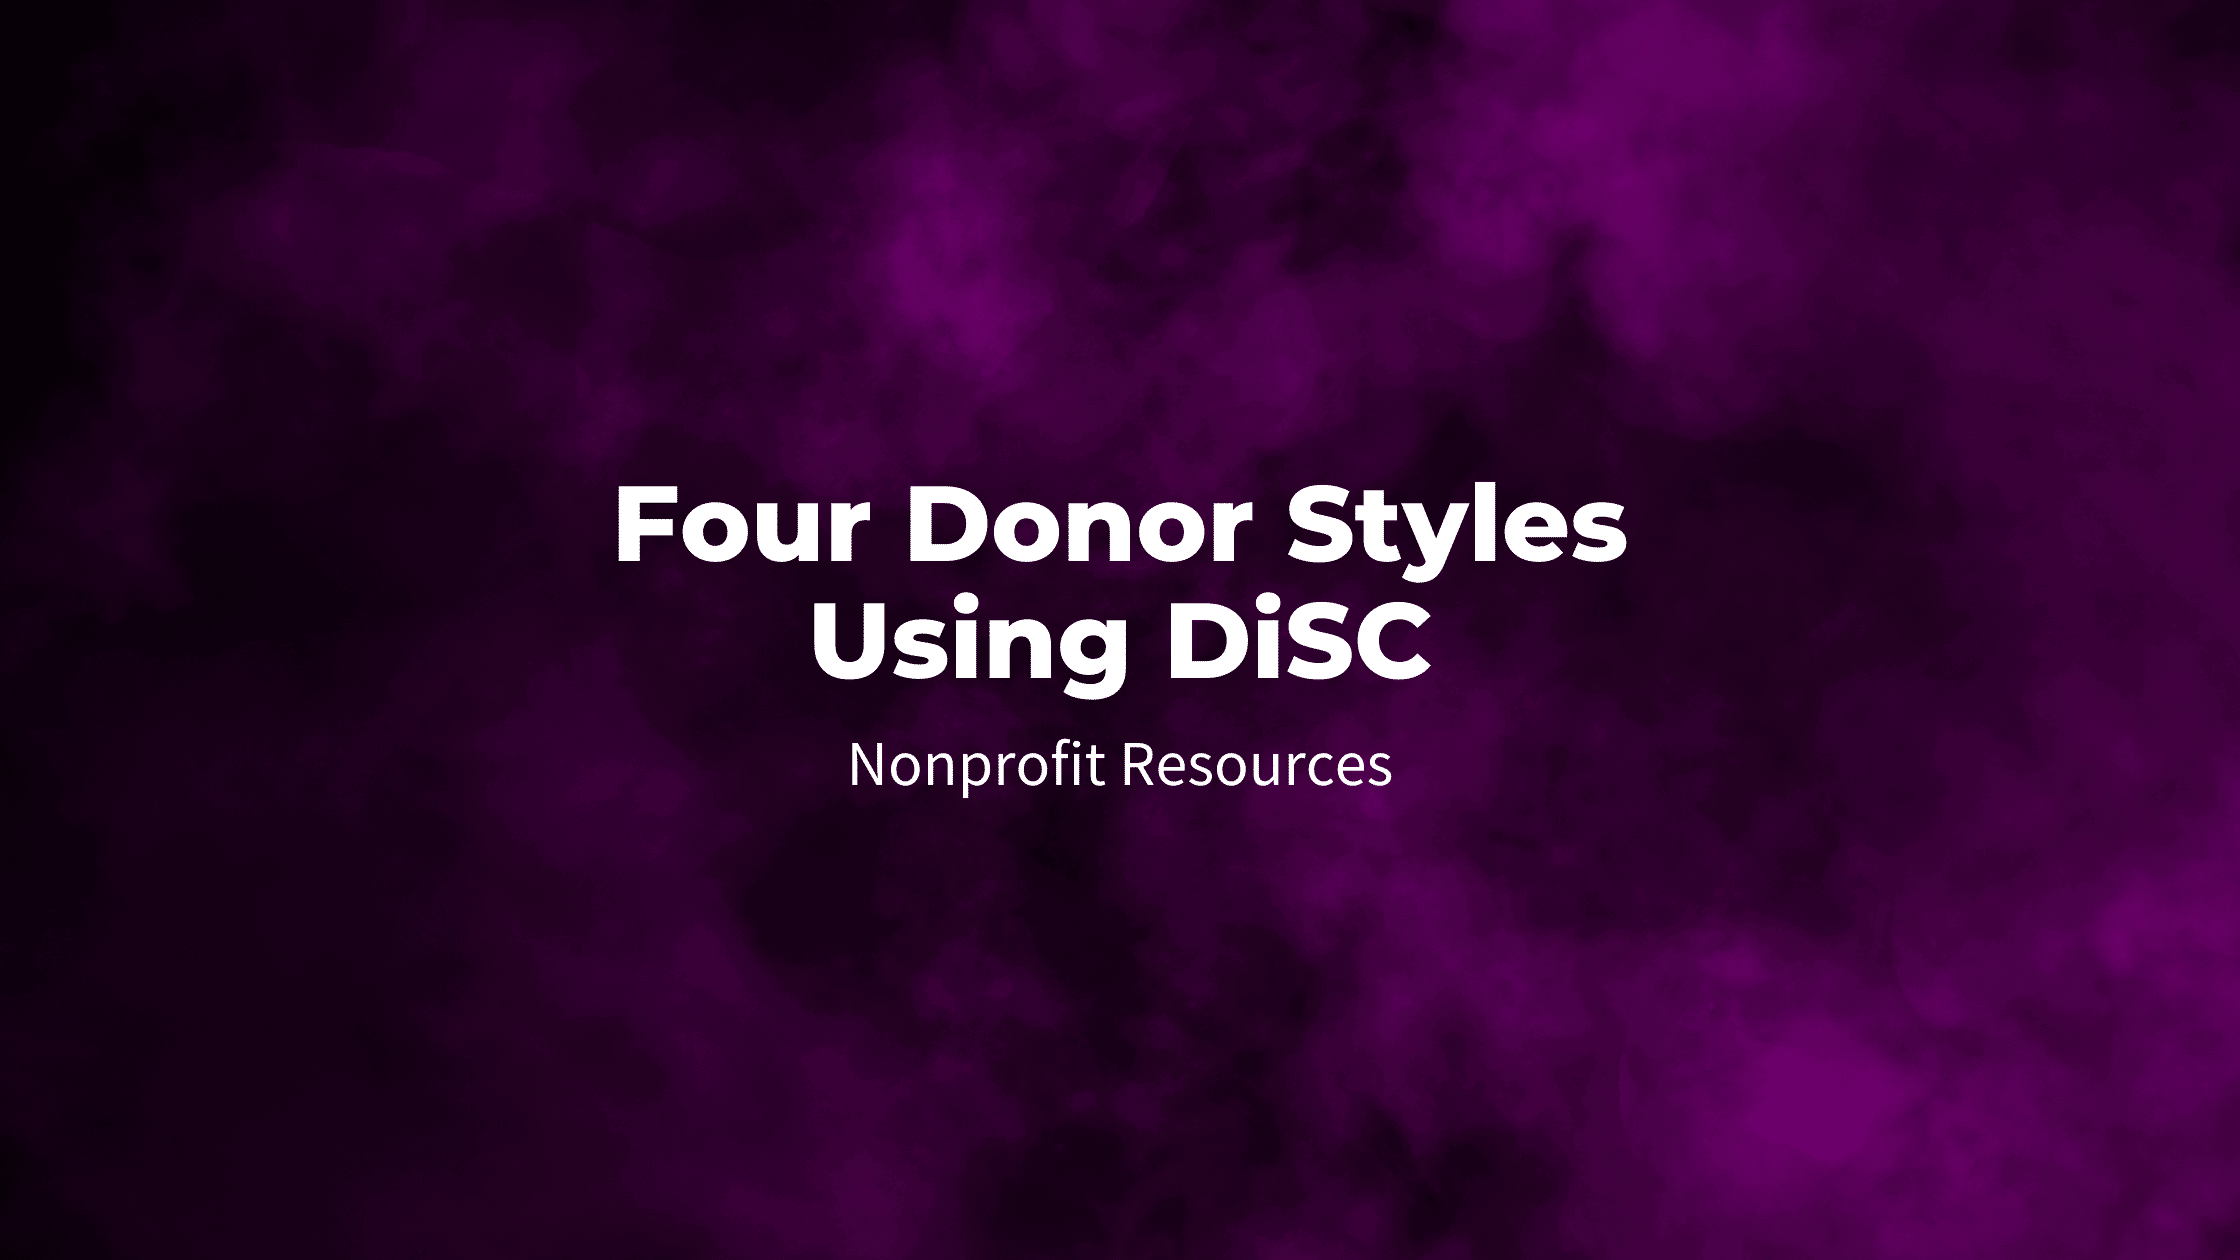 Four Donor Styles Using DiSC